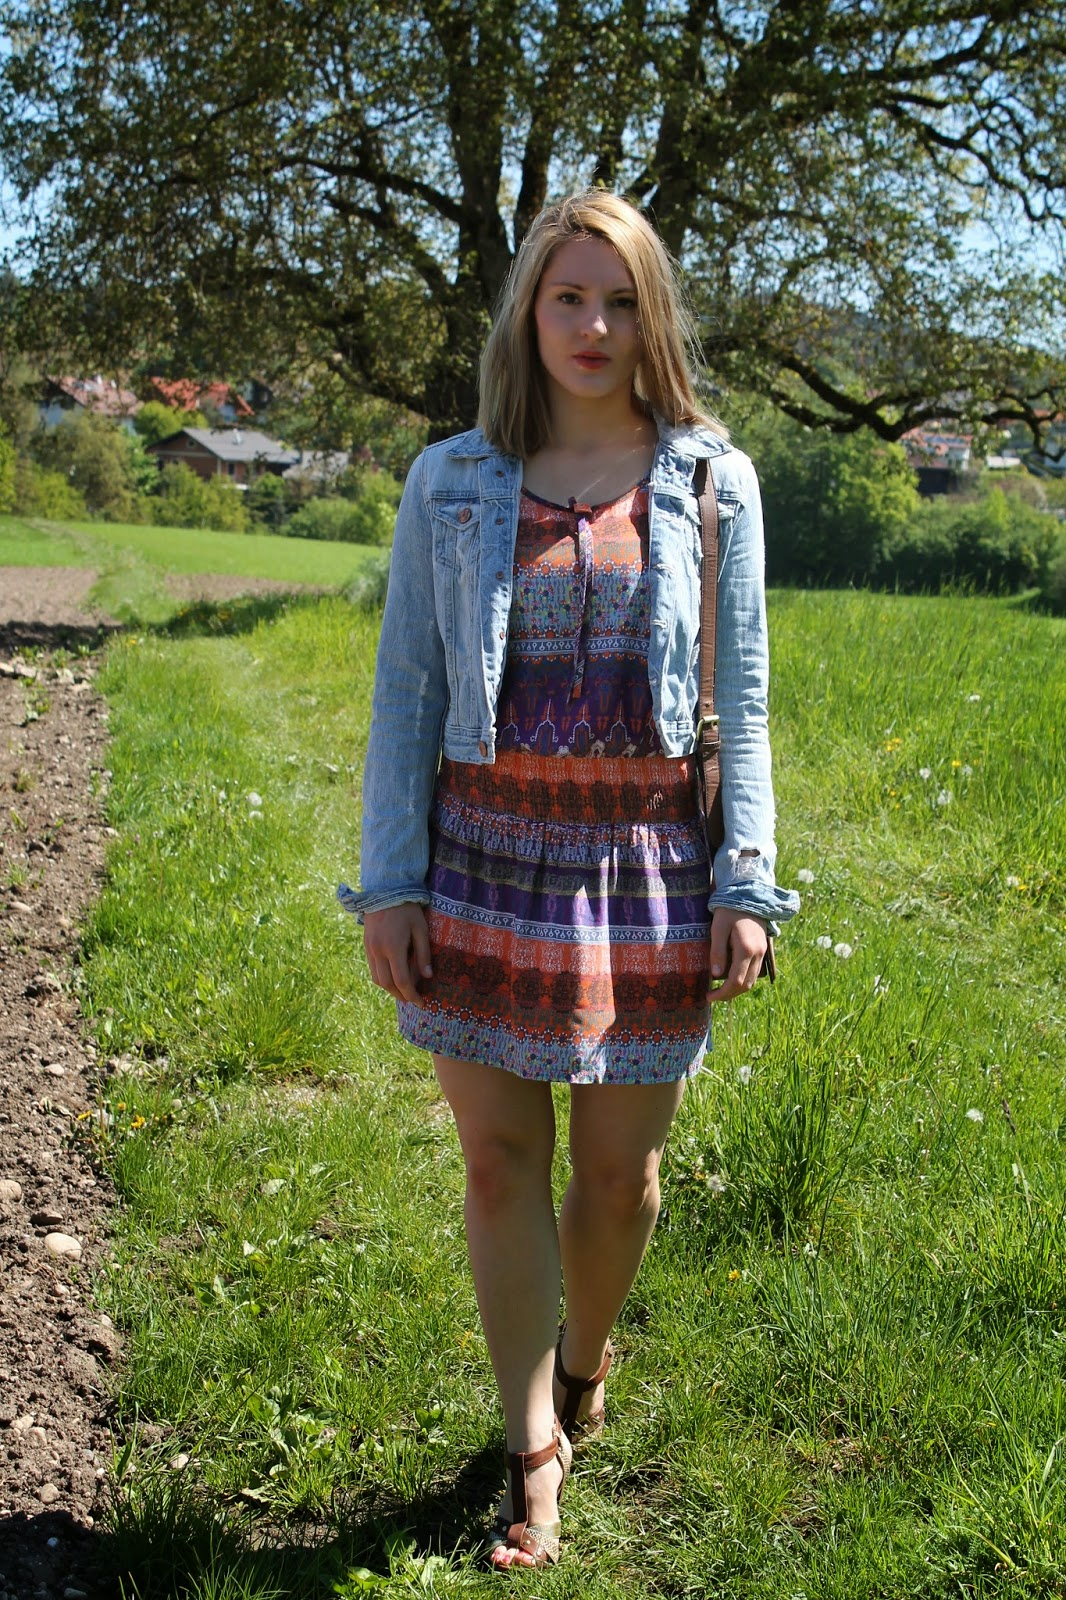 Fashionblogger Austria / Österreich / Deutsch / German / Kärnten / Carinthia / Klagenfurt / Köttmannsdorf / Spring Look / Classy / Edgy / Hippie / Summer / Trend / Summer Look / Even and Odd / Ernstings Family / H&M / Dress /